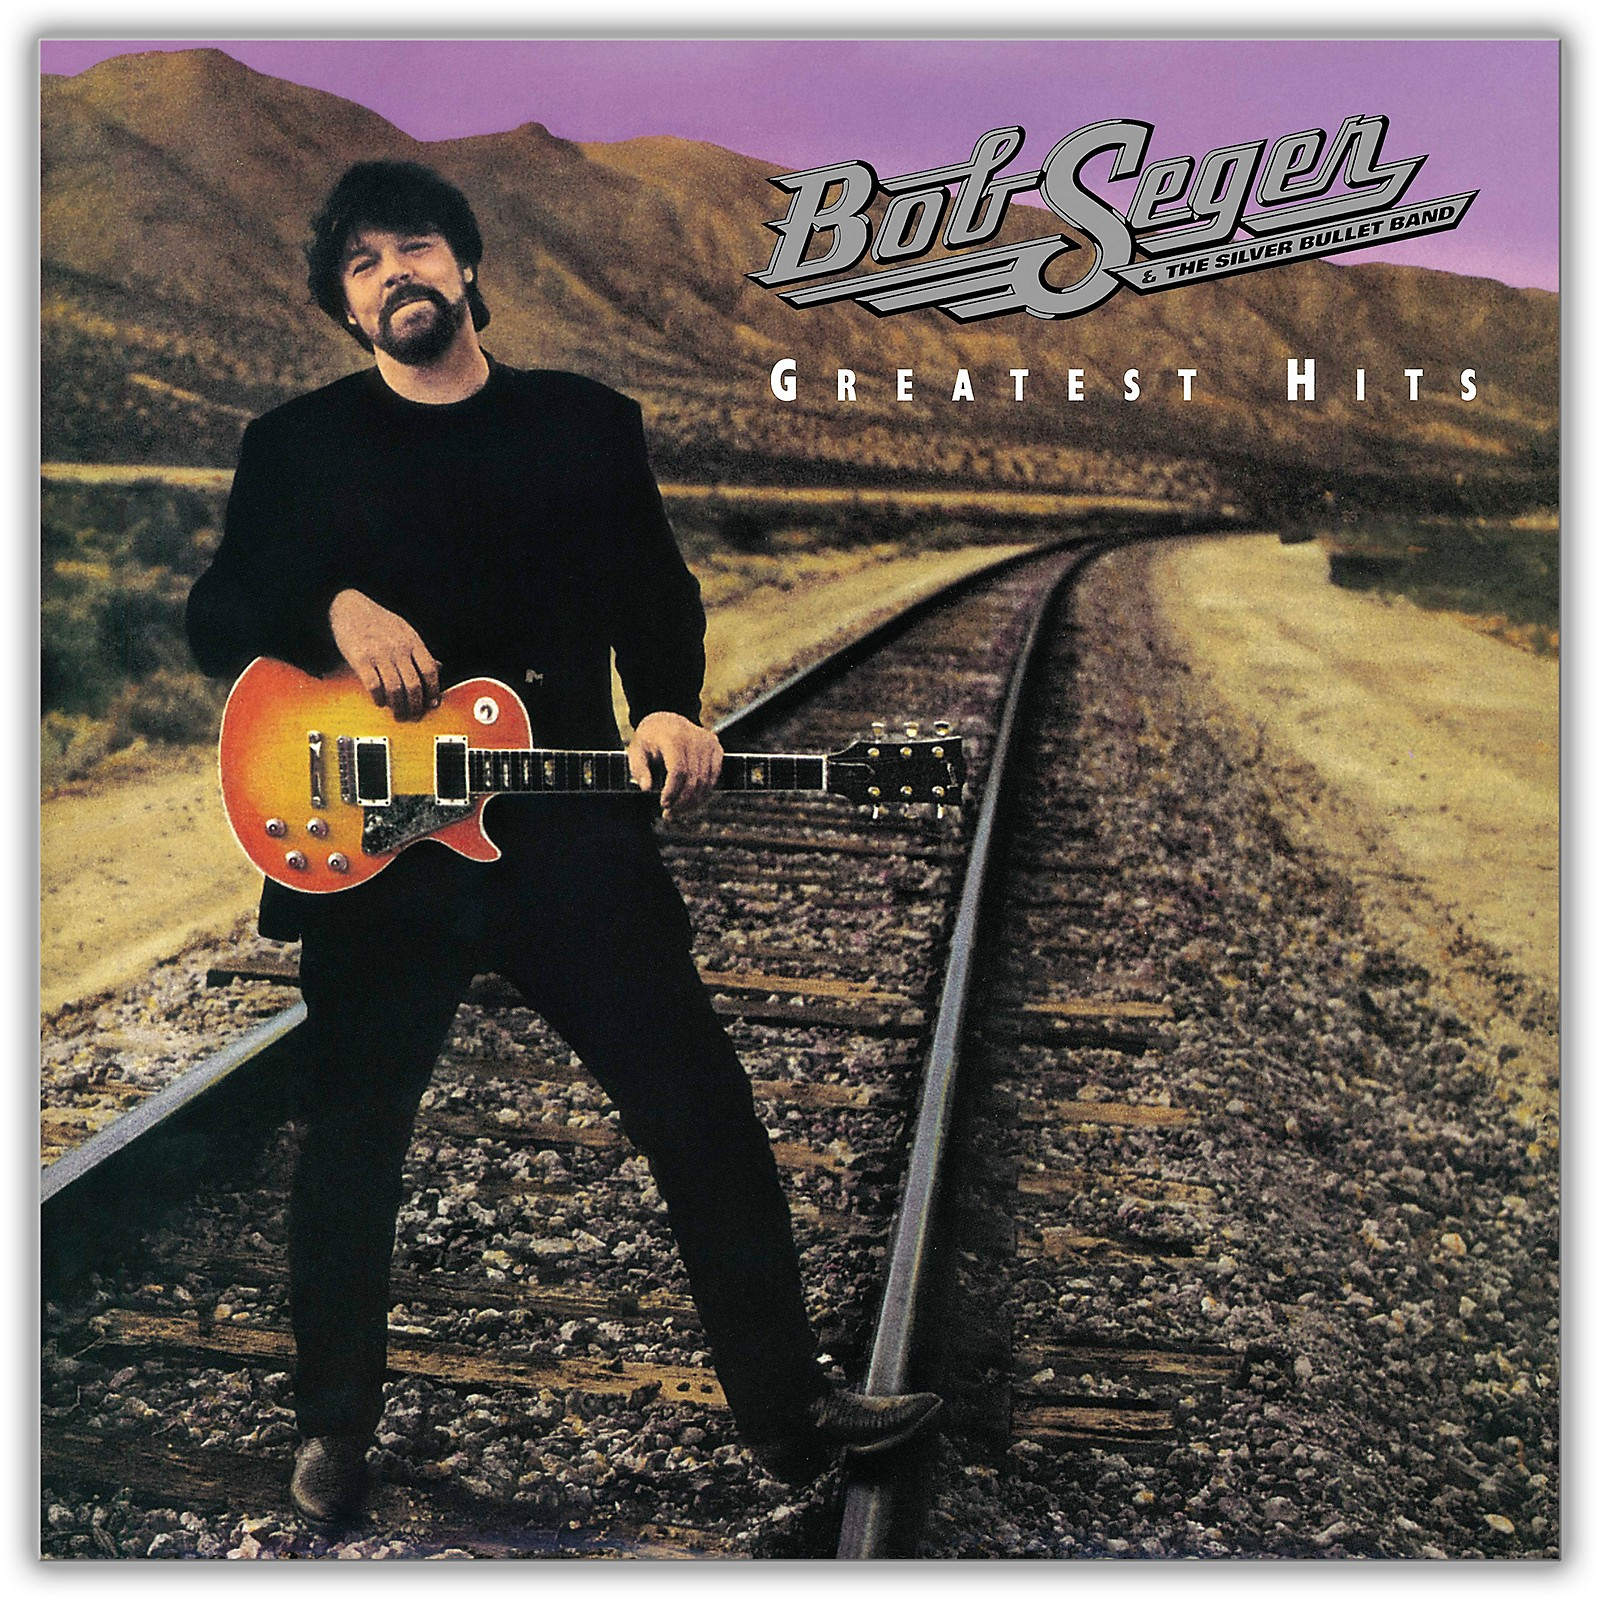 Universal Music Group Bob Seger & The Silver Bullet Band Greatest Hits [2 LP]